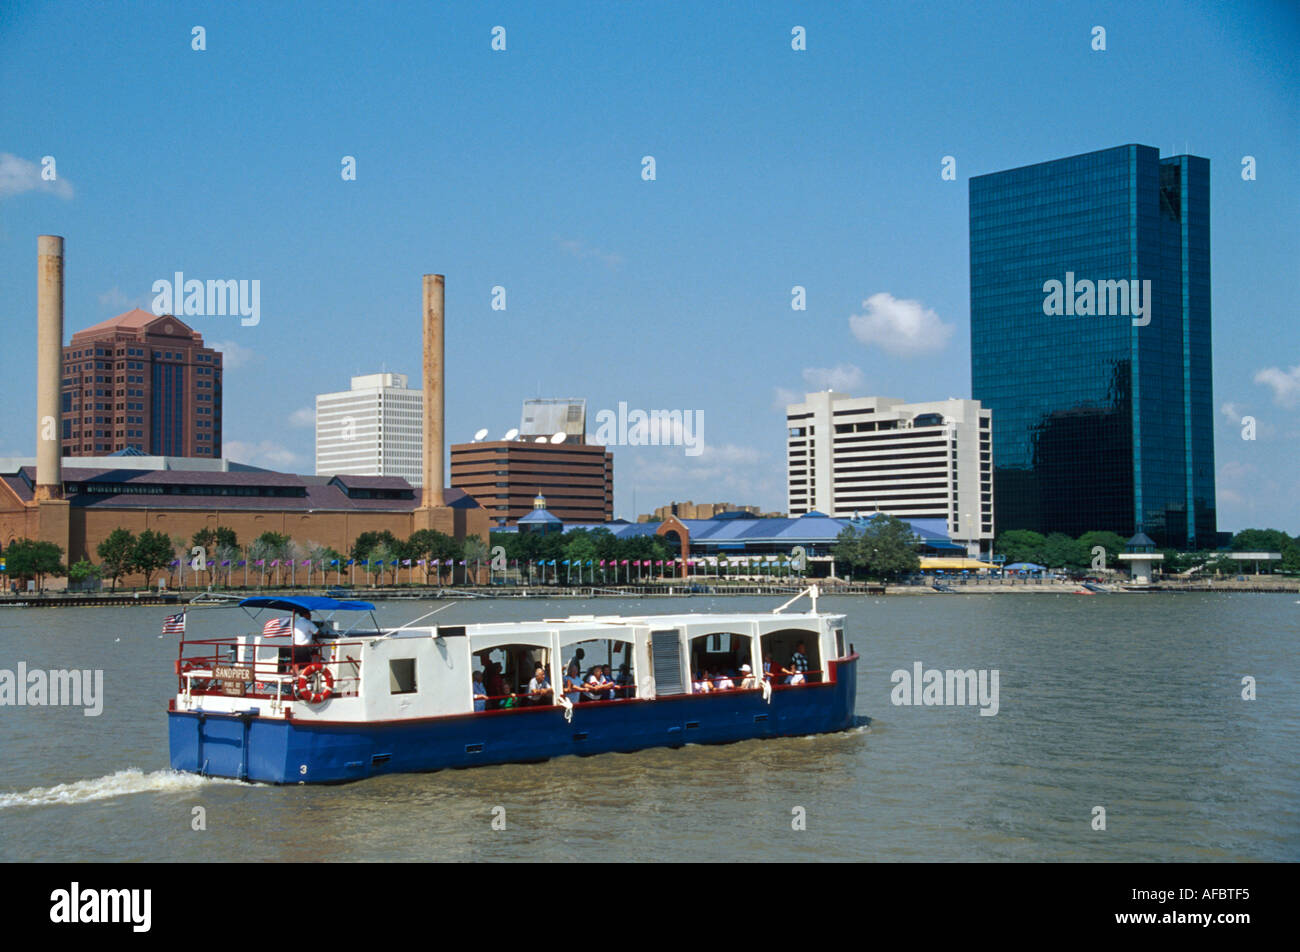 Ohio lucas county maumee - Stock Photo Toledo Ohio Maumee River Mv Sandpiper Tour Boat View From The Docks Ownes Illinois Building On Right